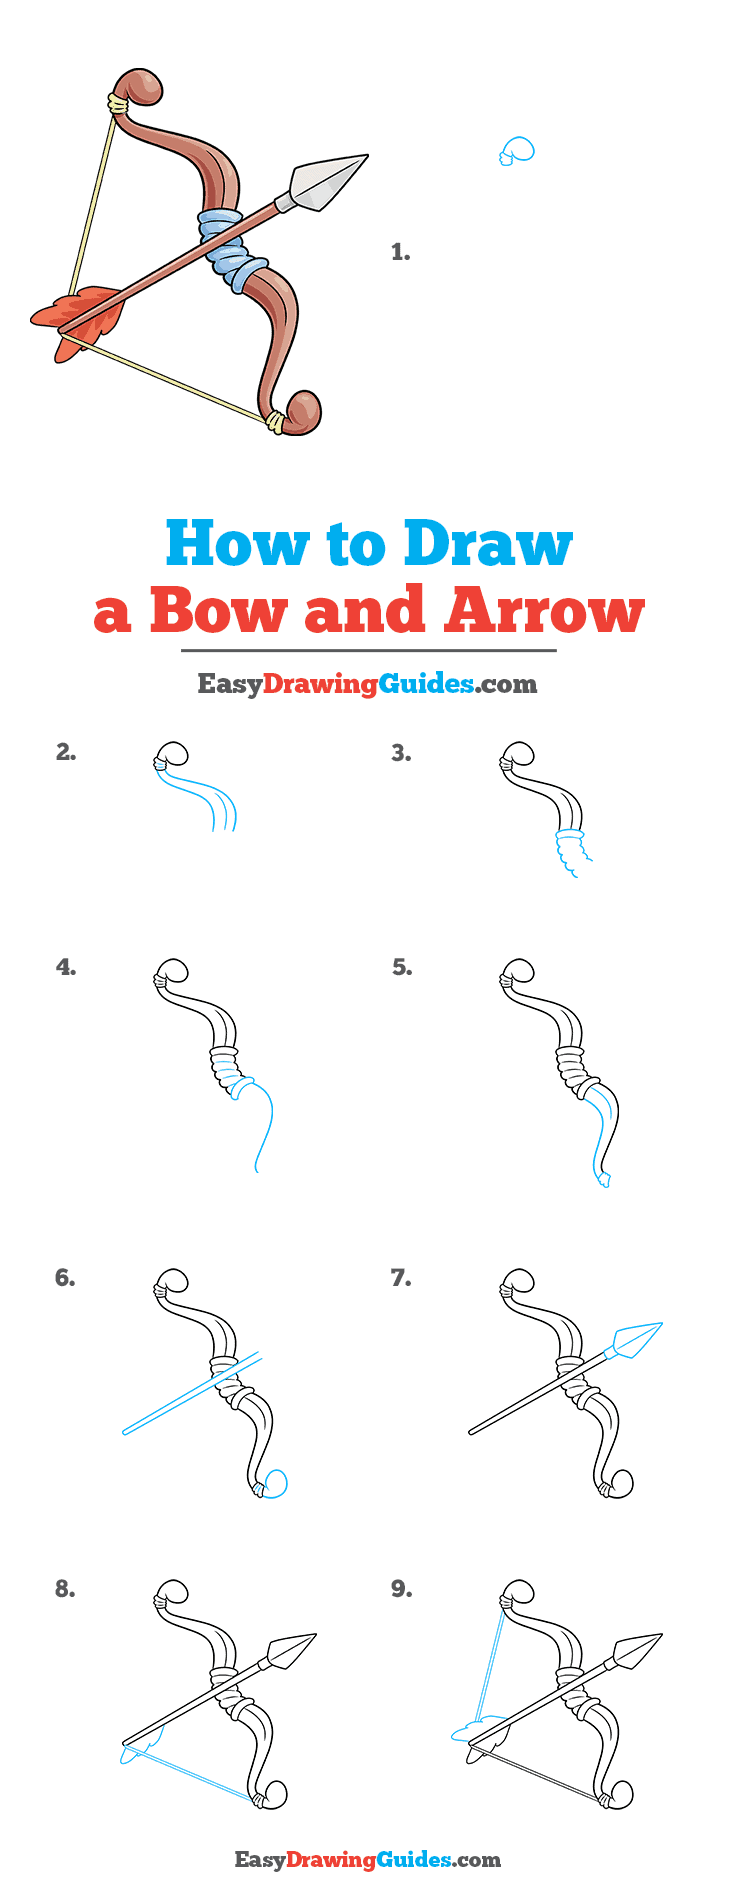 How to Draw a Bow and Arrow Step by Step Tutorial Image